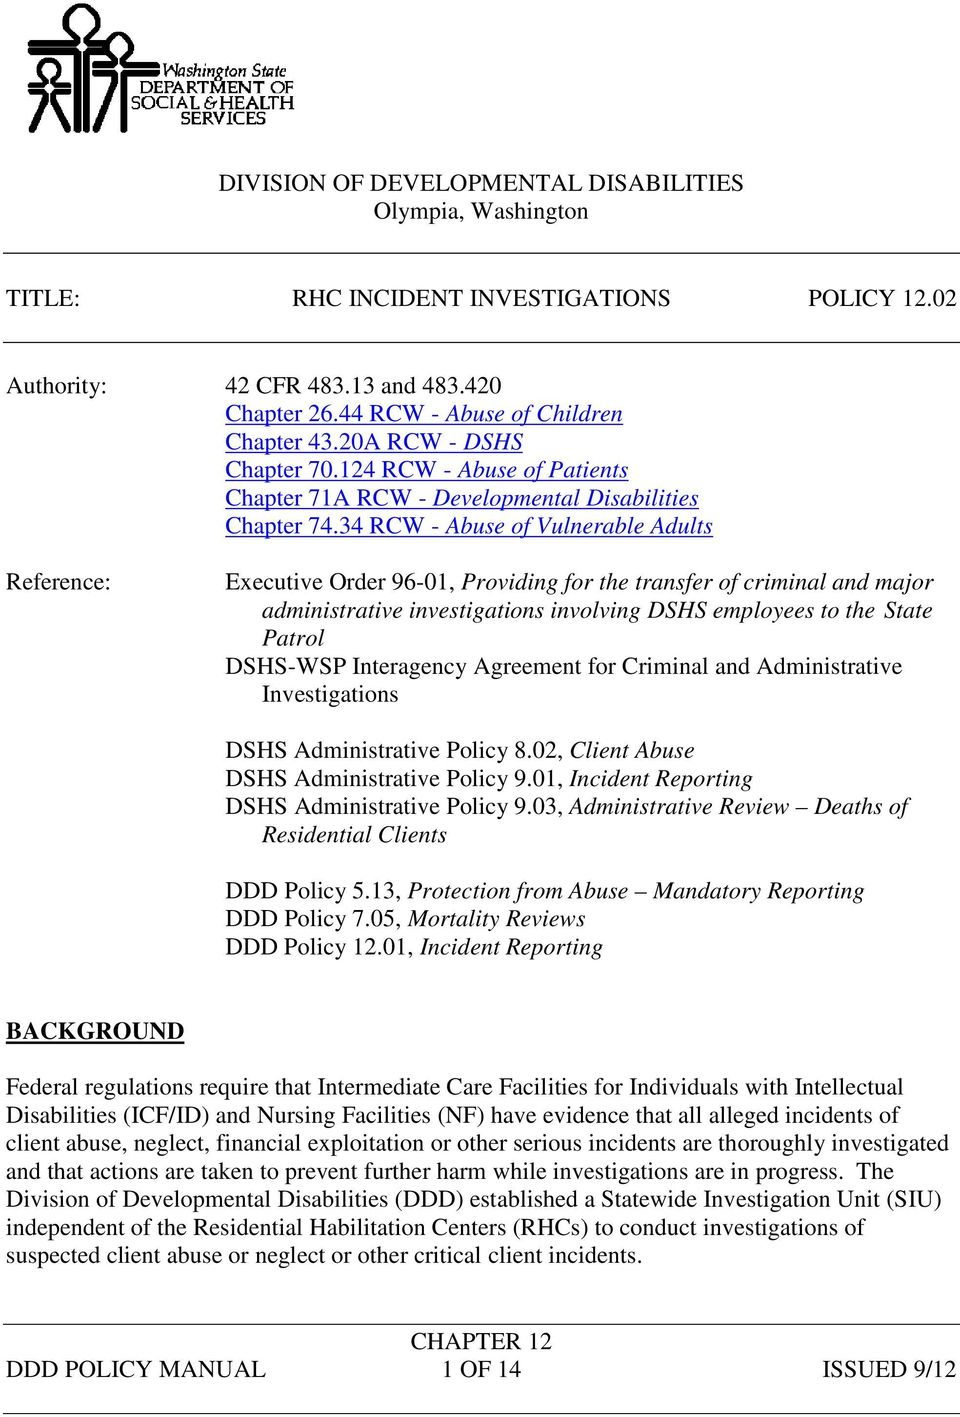 34 RCW - Abuse of Vulnerable Adults Reference: Executive Order 96-01, Providing for the transfer of criminal and major administrative investigations involving DSHS employees to the State Patrol